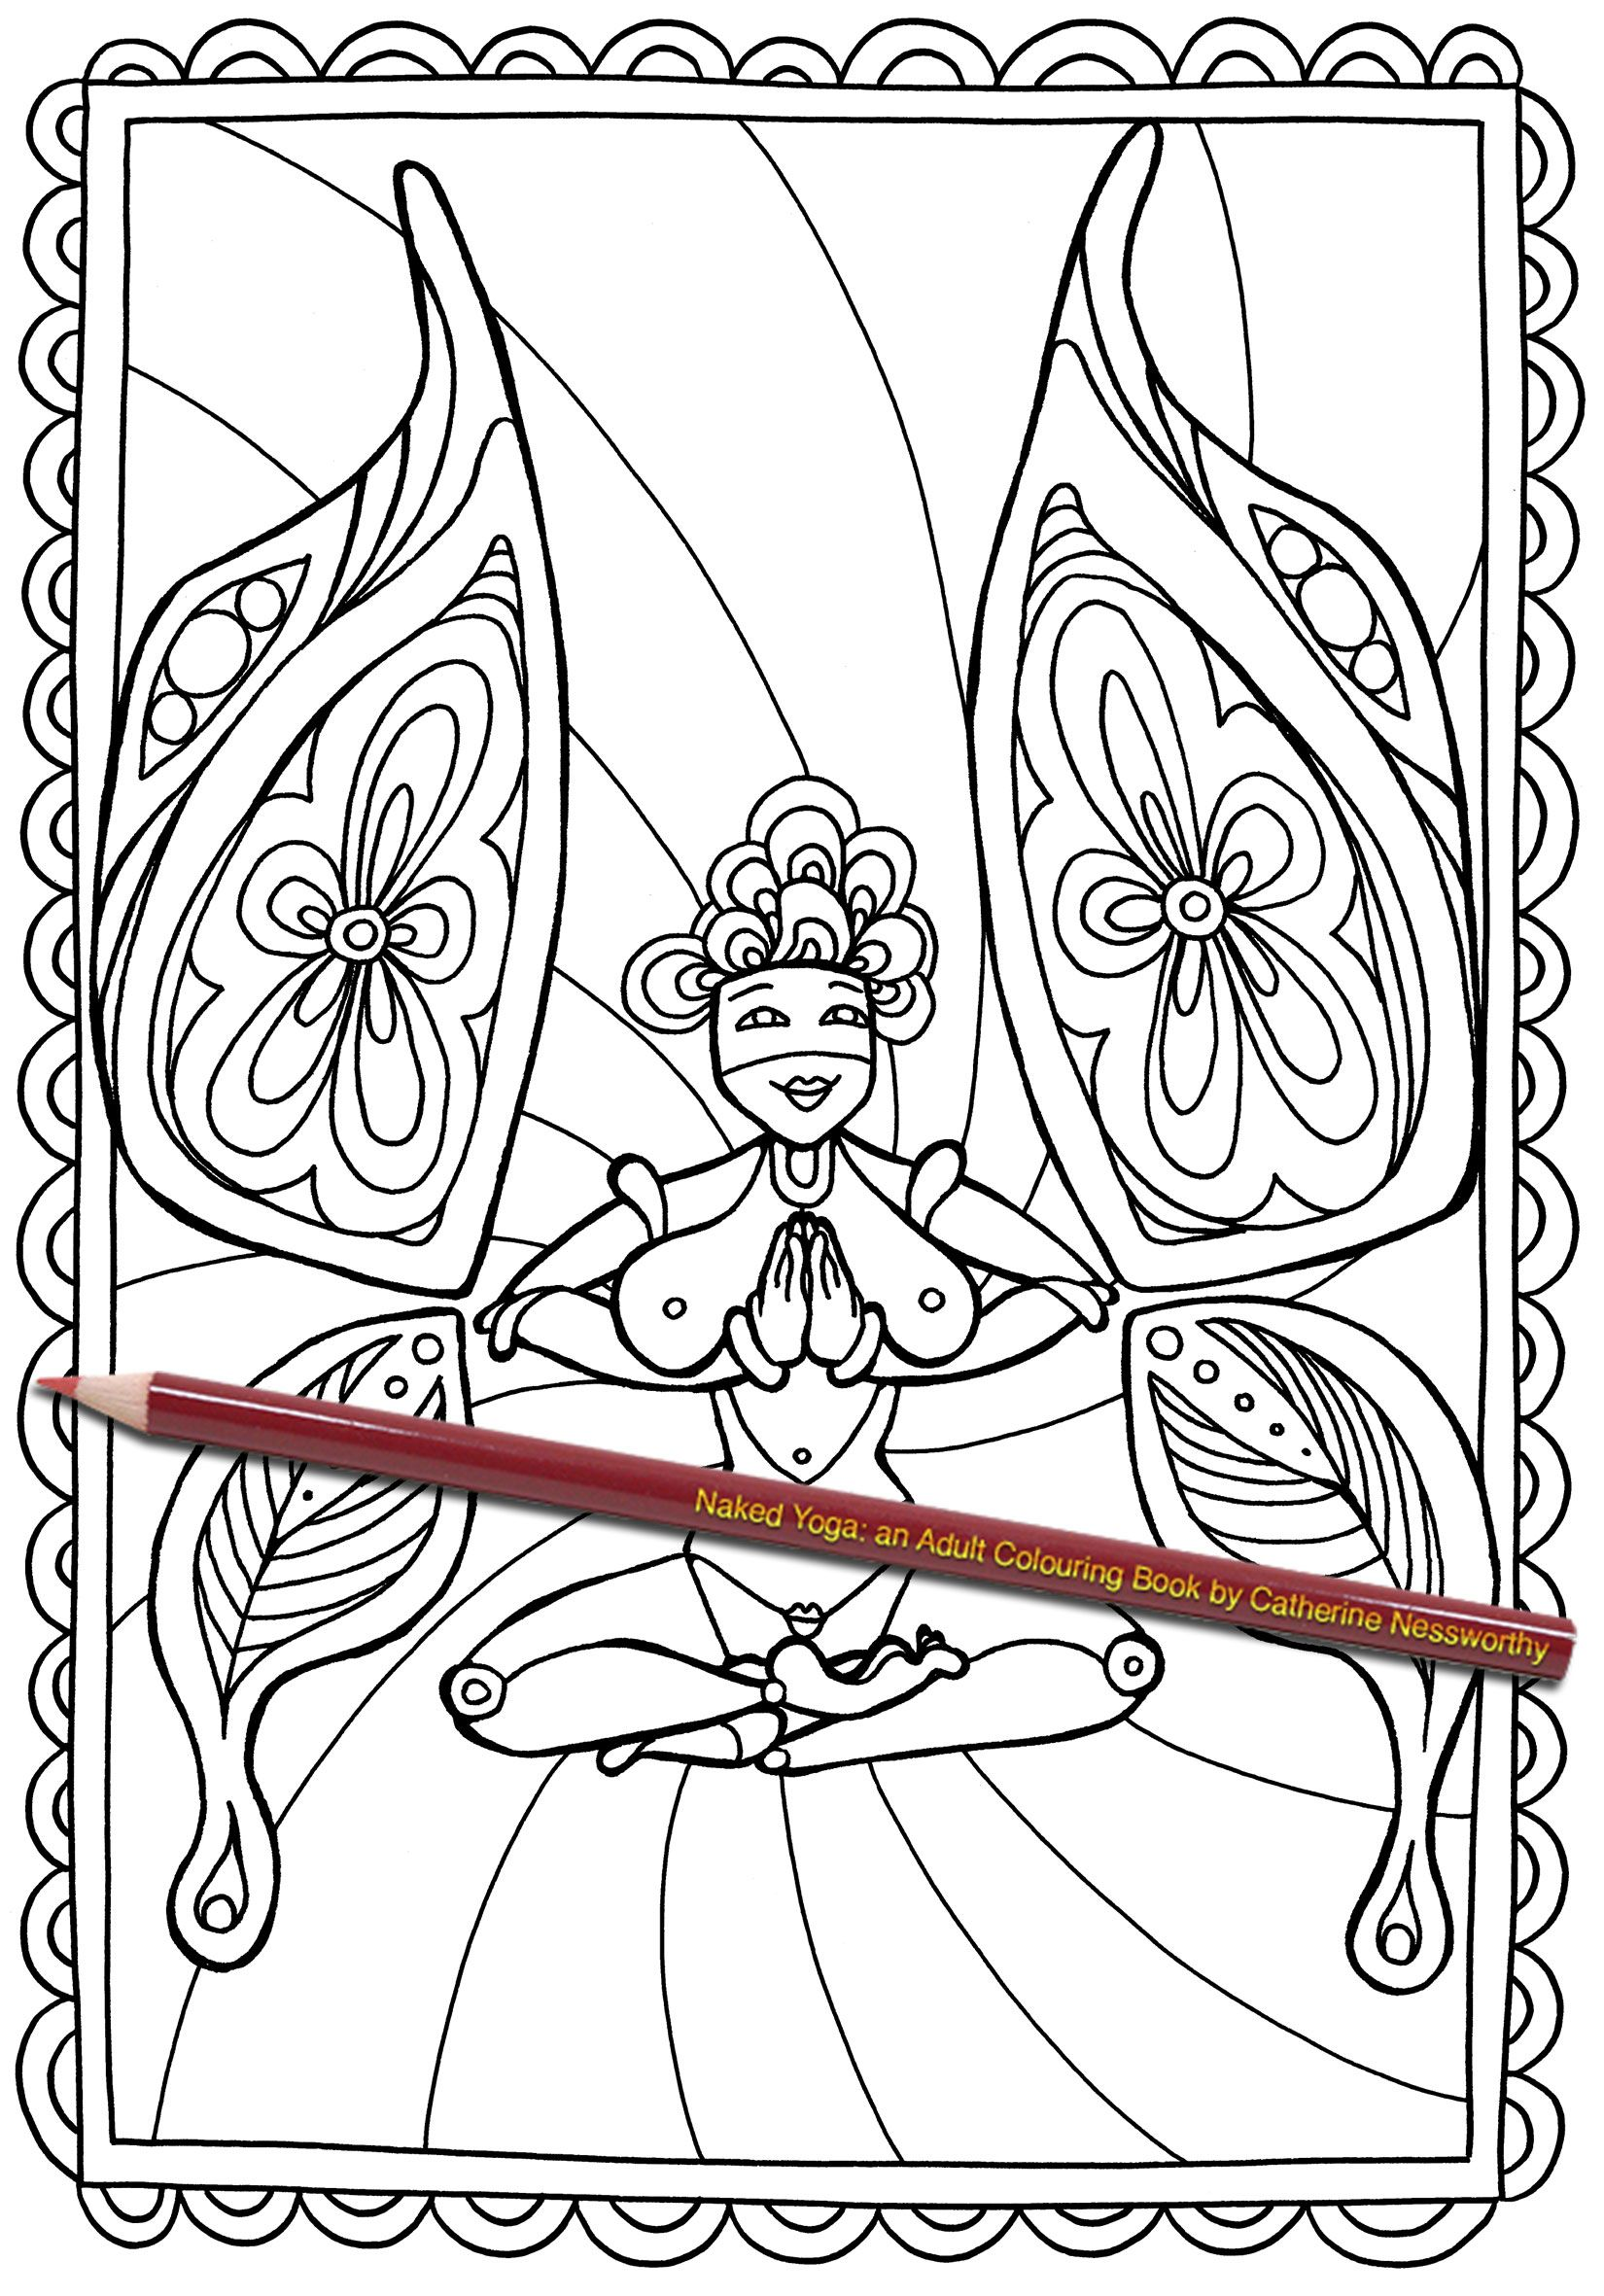 Lovely Sports Car Coloring Pages Thin Position Coloring Book Flat Bun B Coloring Book Doodle Coloring Book Young Book Of Colors OrangeColor Swatch Book A Fairy Sitting In Lotus Position Shows Off Her Butterfly Wings In ..